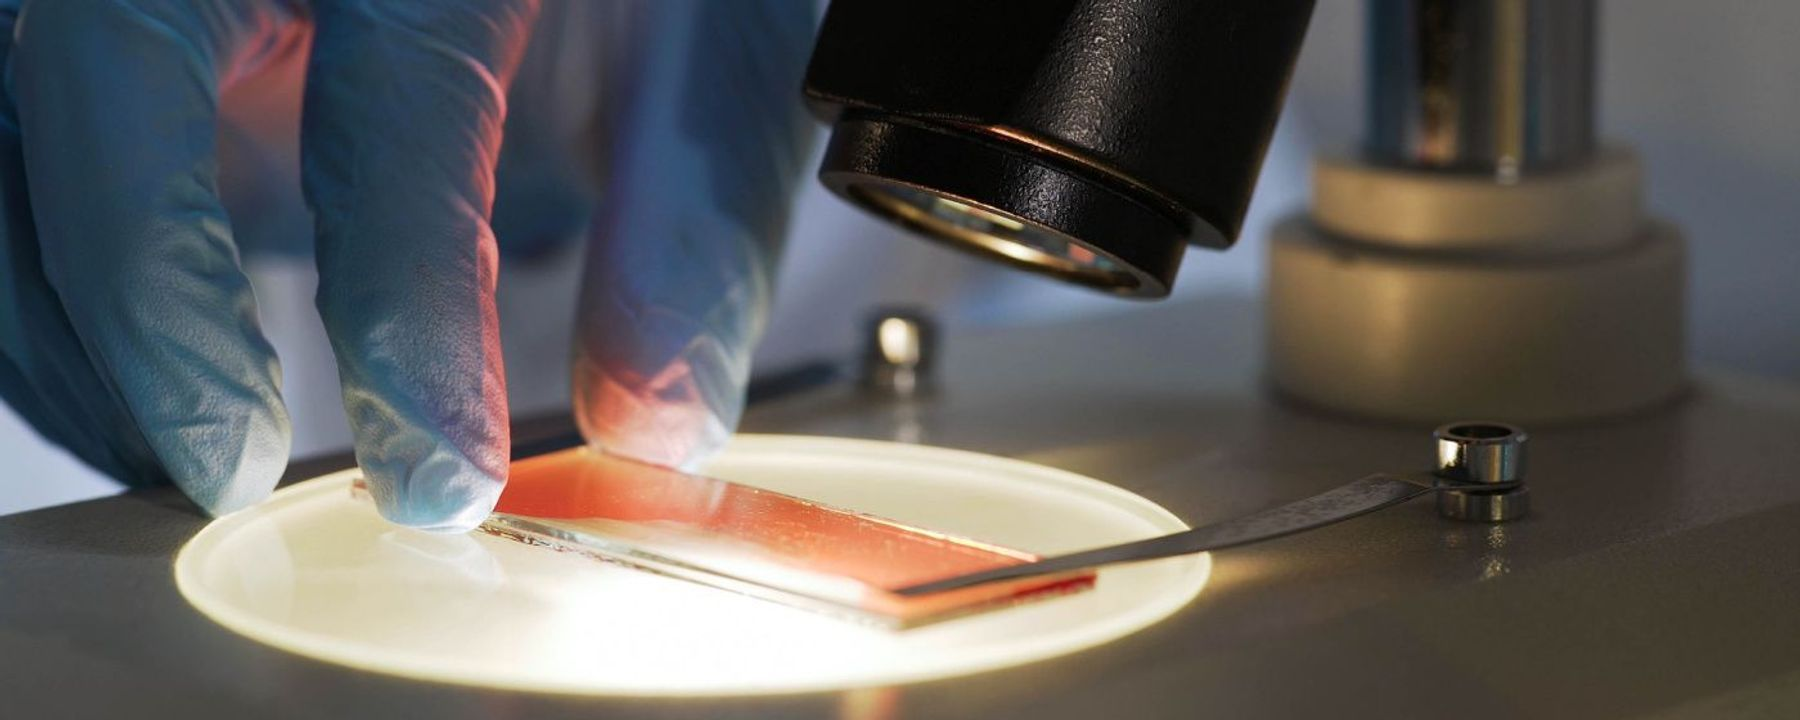 COVID-19 More Deadly with Blood than Solid Cancer: Study